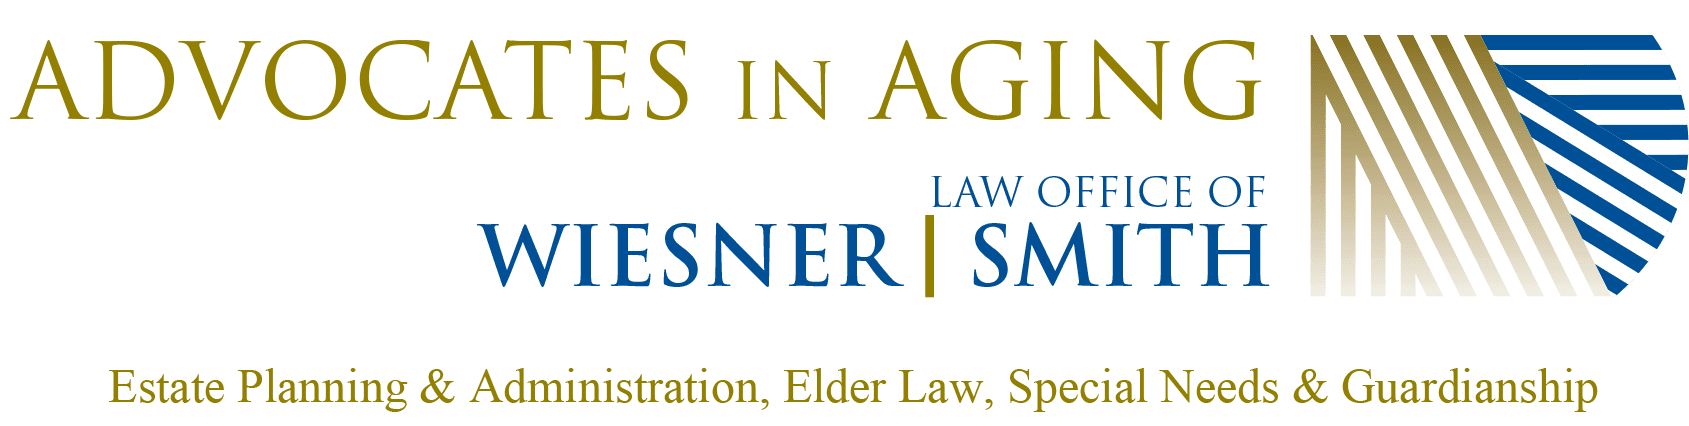 Advocates in Aging: Law Office of Wiesner Smith